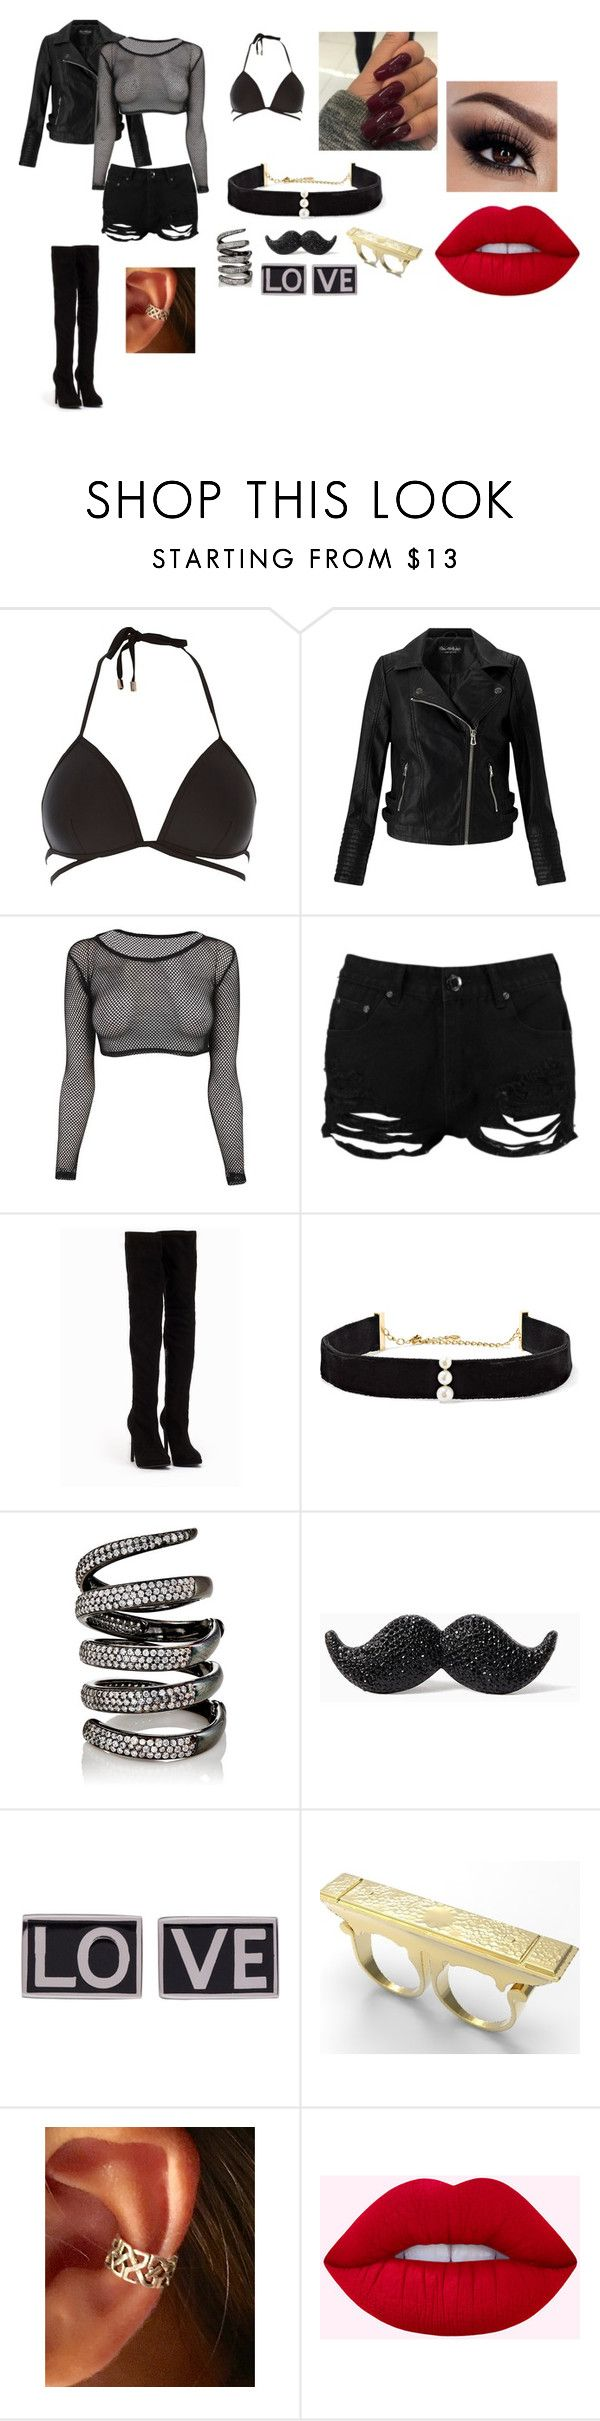 """""""Untitled #149"""" by celine-cheong on Polyvore featuring River Island, Miss Selfridge, Boohoo, Nly Shoes, Anissa Kermiche, Fallon, Kate Spade and Givenchy"""